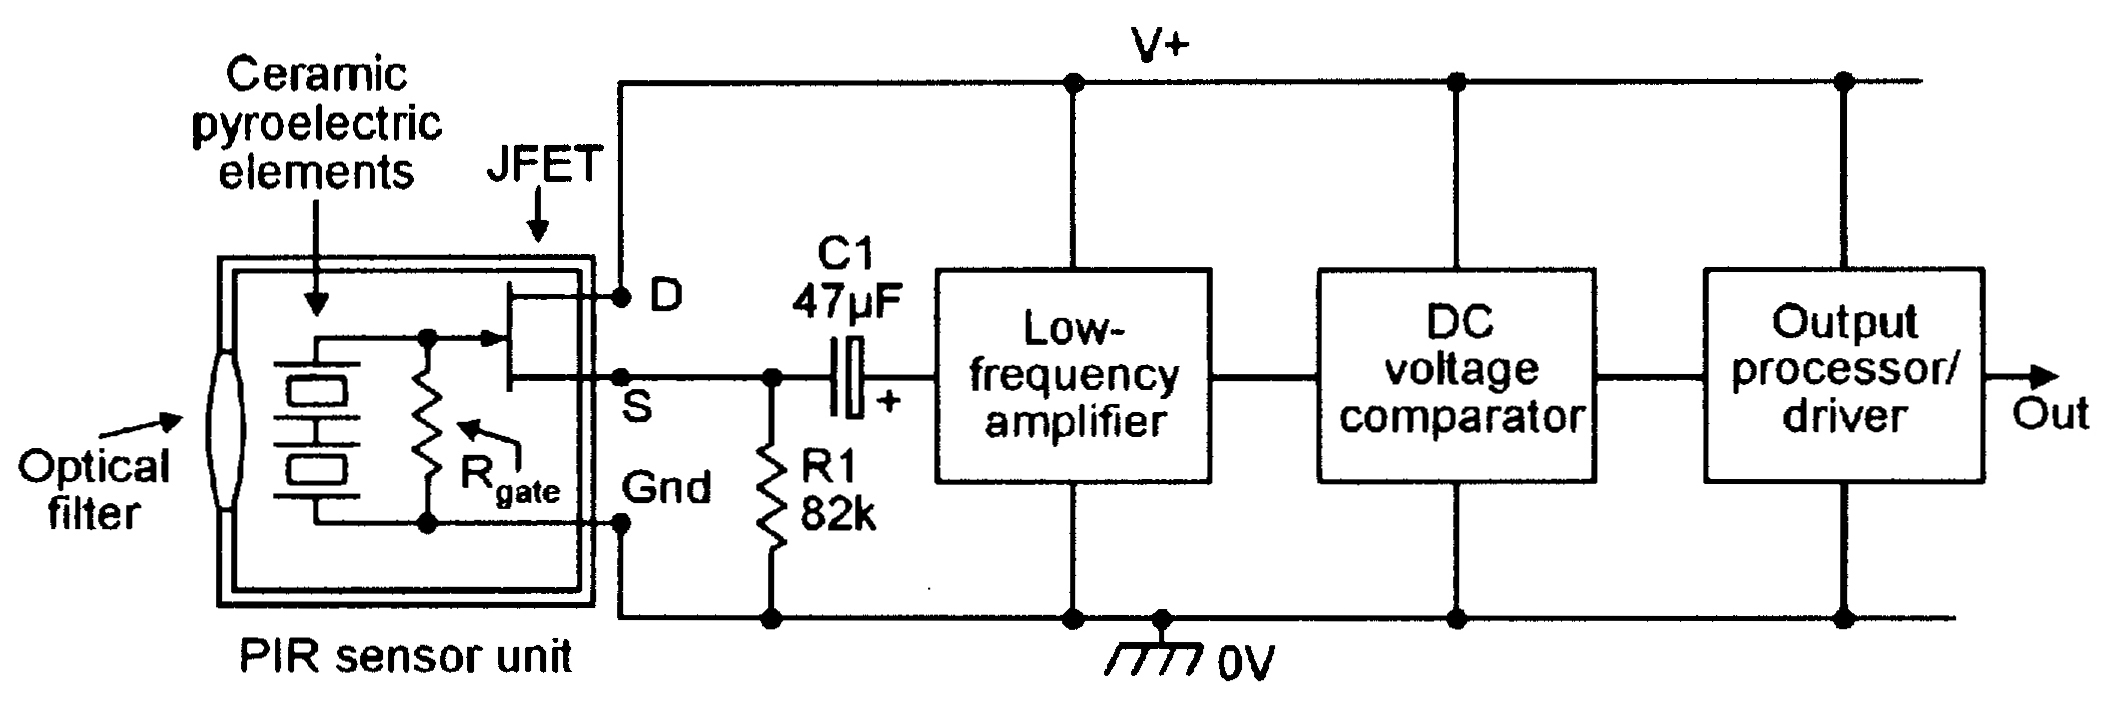 Fridgedooralarmcircuitbmp Fridge Door Alarm Circuit Diagram Using 555 And Ldr Electronic